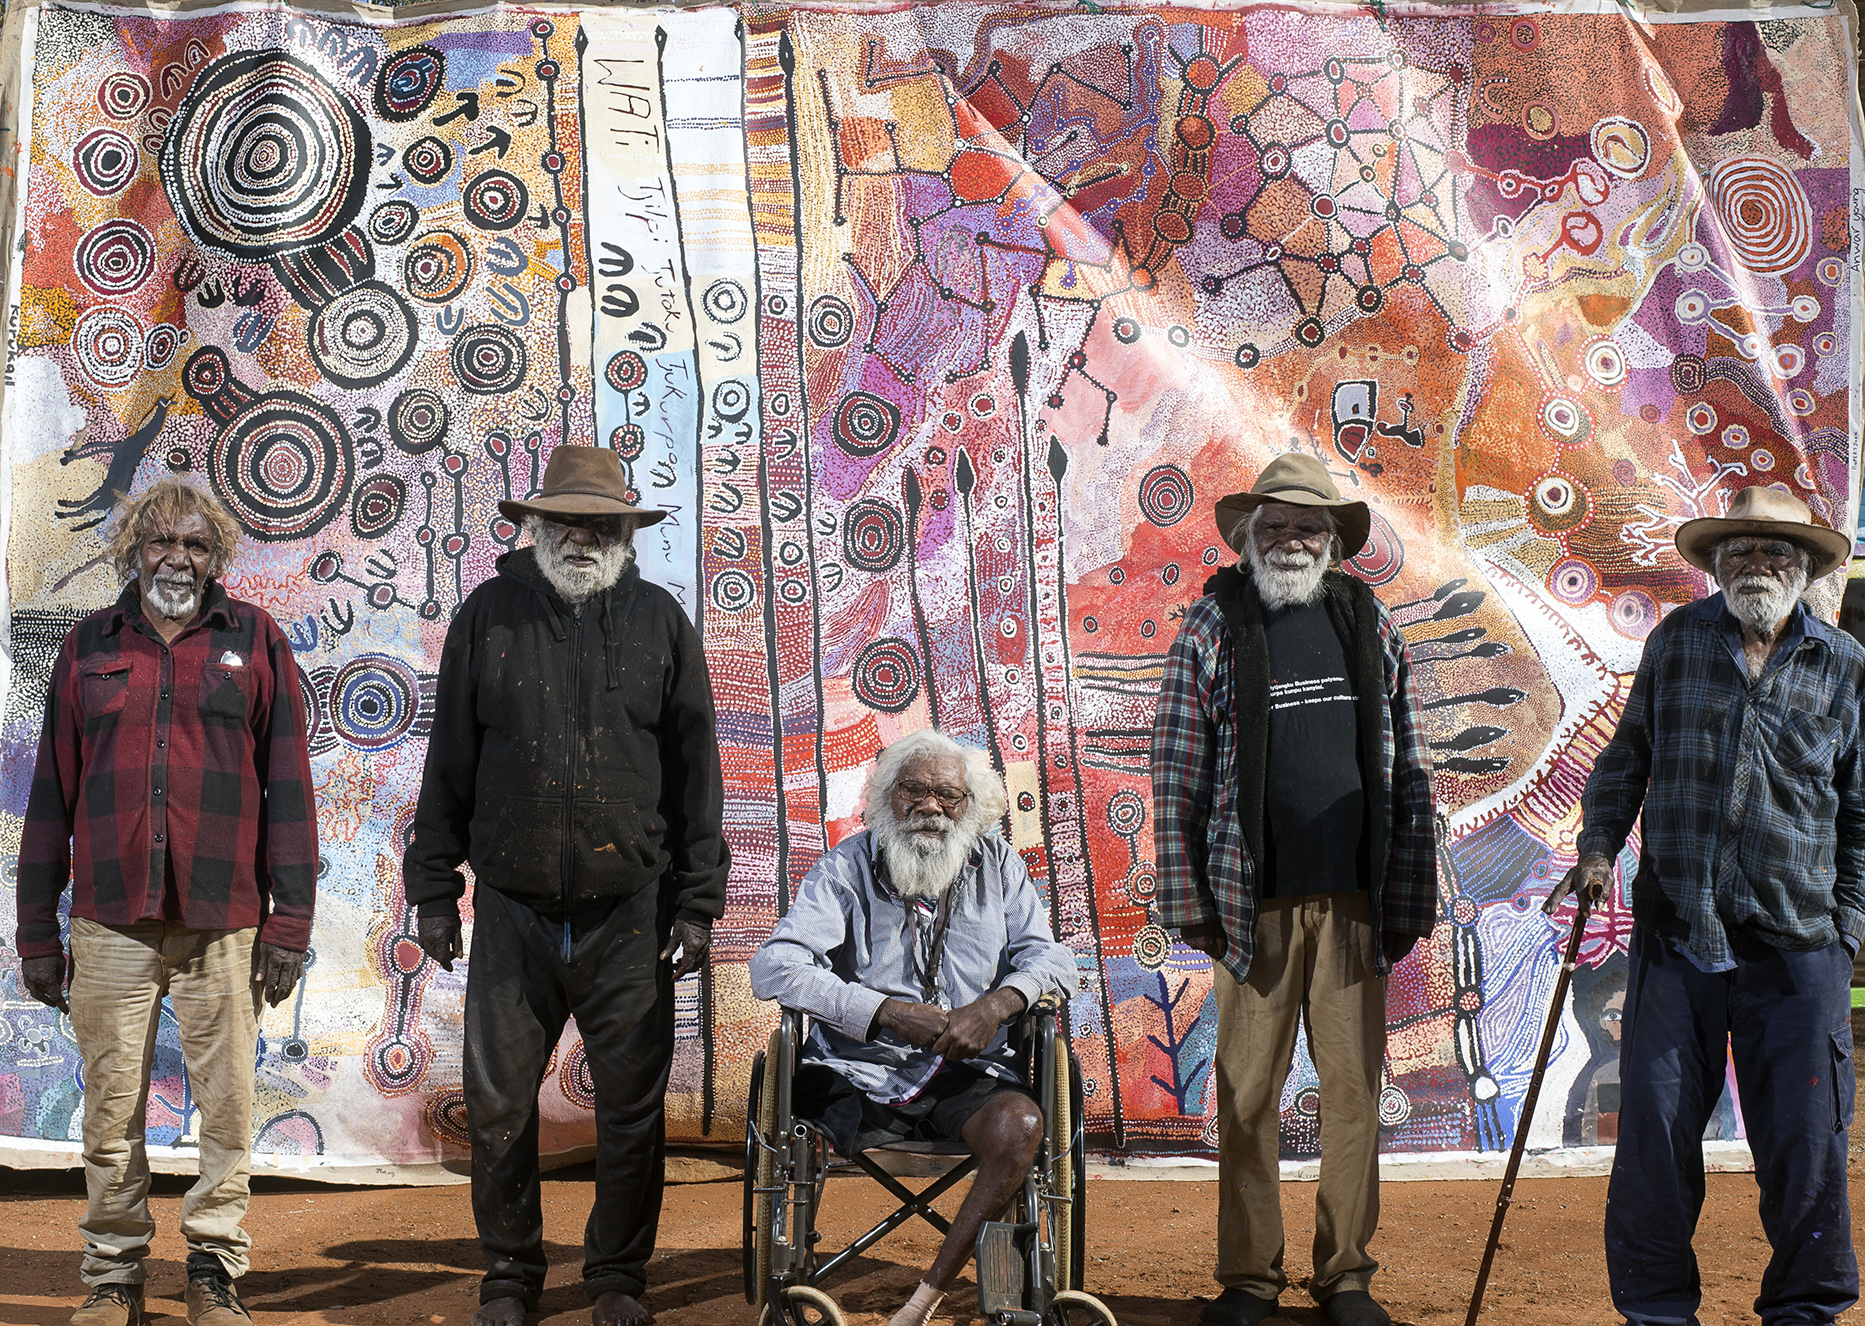 apy mEN'S collaborative 2016 WAS PAINTED BY 22 ARTISTS, INCLUDING (l-r)  Ronnie dOUGLAS, bRENTON kEN, wILLY kAIKA bURTON, mICK wIKILYIRI AND rAY kEN  (tJALA aRTS). iMAGE Rhett hAMMERTON.